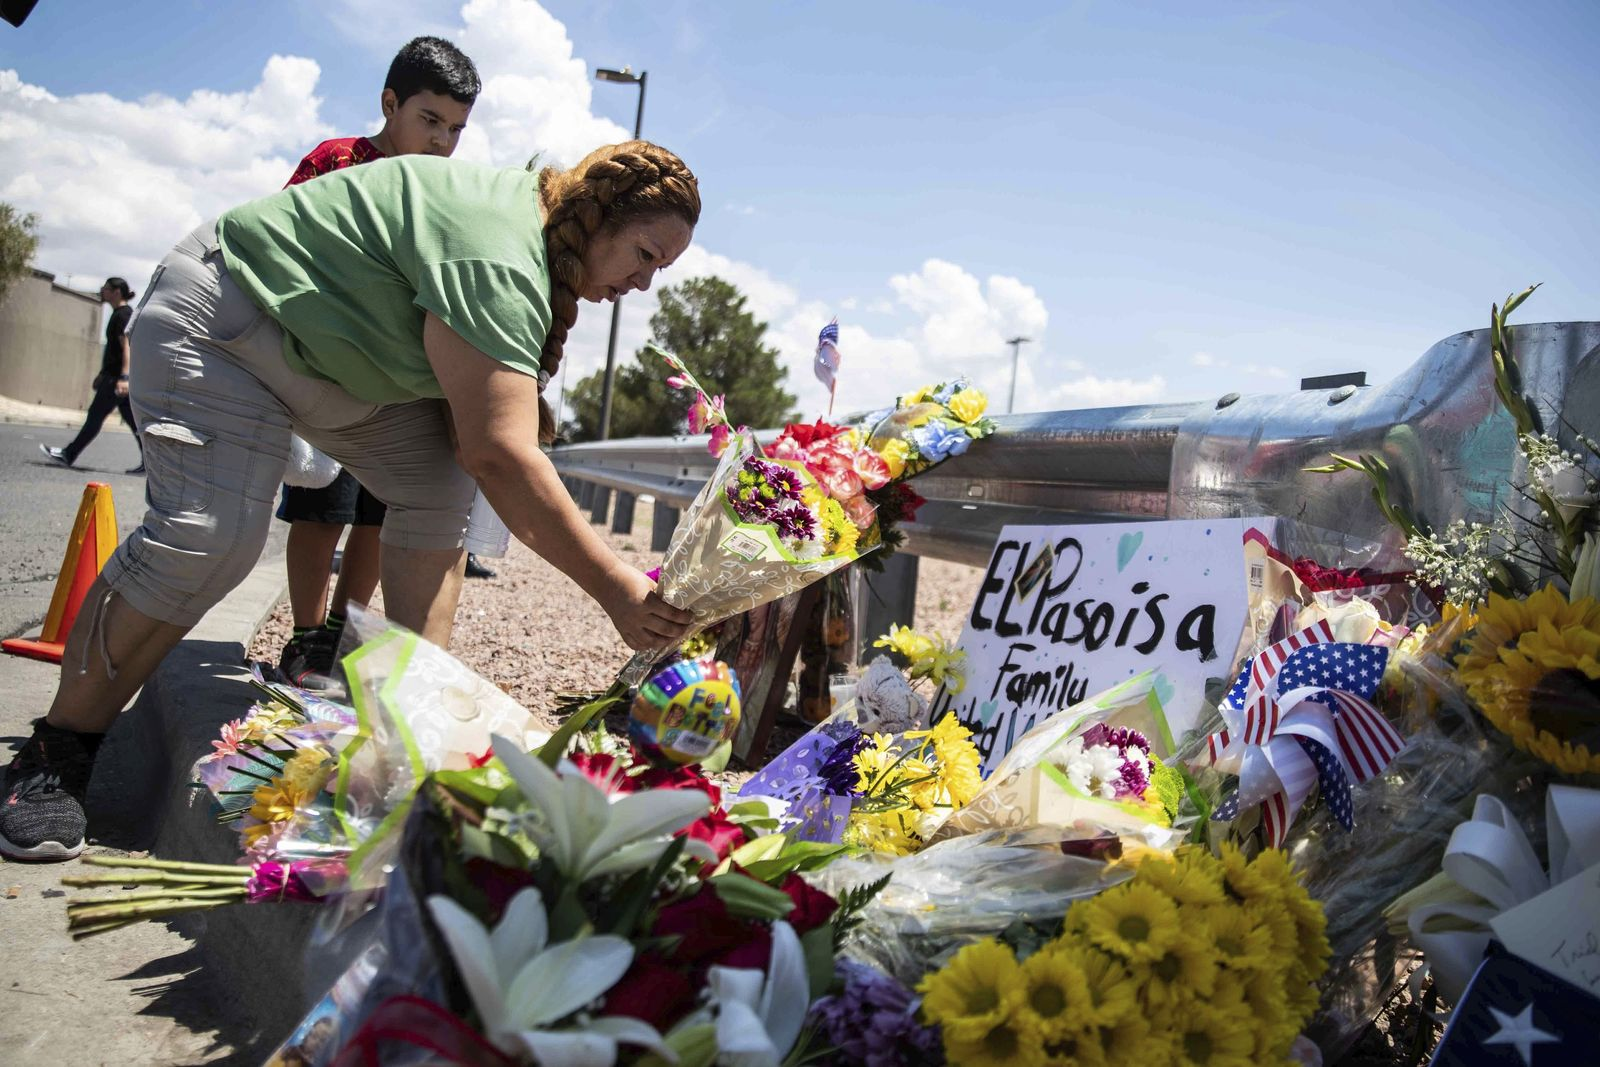 Carmen Roldan brings some flowers to honor the memory of the victims of the mass shooting occurred in Walmart on Saturday morning in El Paso on Sunday, August 4, 2019. (Lola Gomez/Austin American-Statesman via AP)